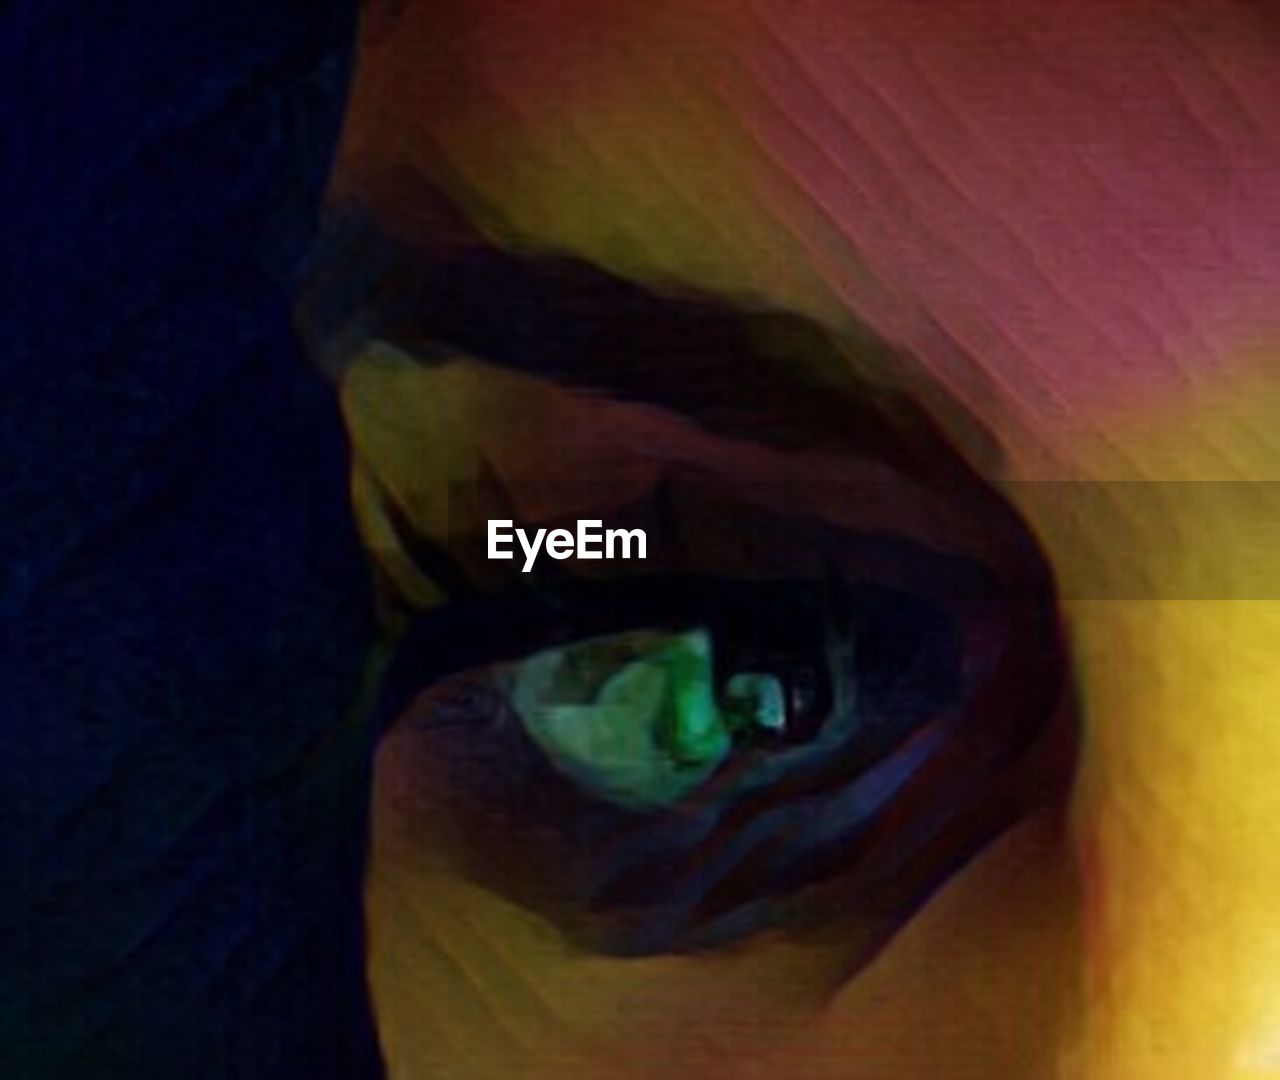 human body part, human eye, yellow, abstract, looking at camera, portrait, one person, people, adult, human face, close-up, adults only, one woman only, eyesight, illuminated, eyelash, young adult, eyeball, outdoors, day